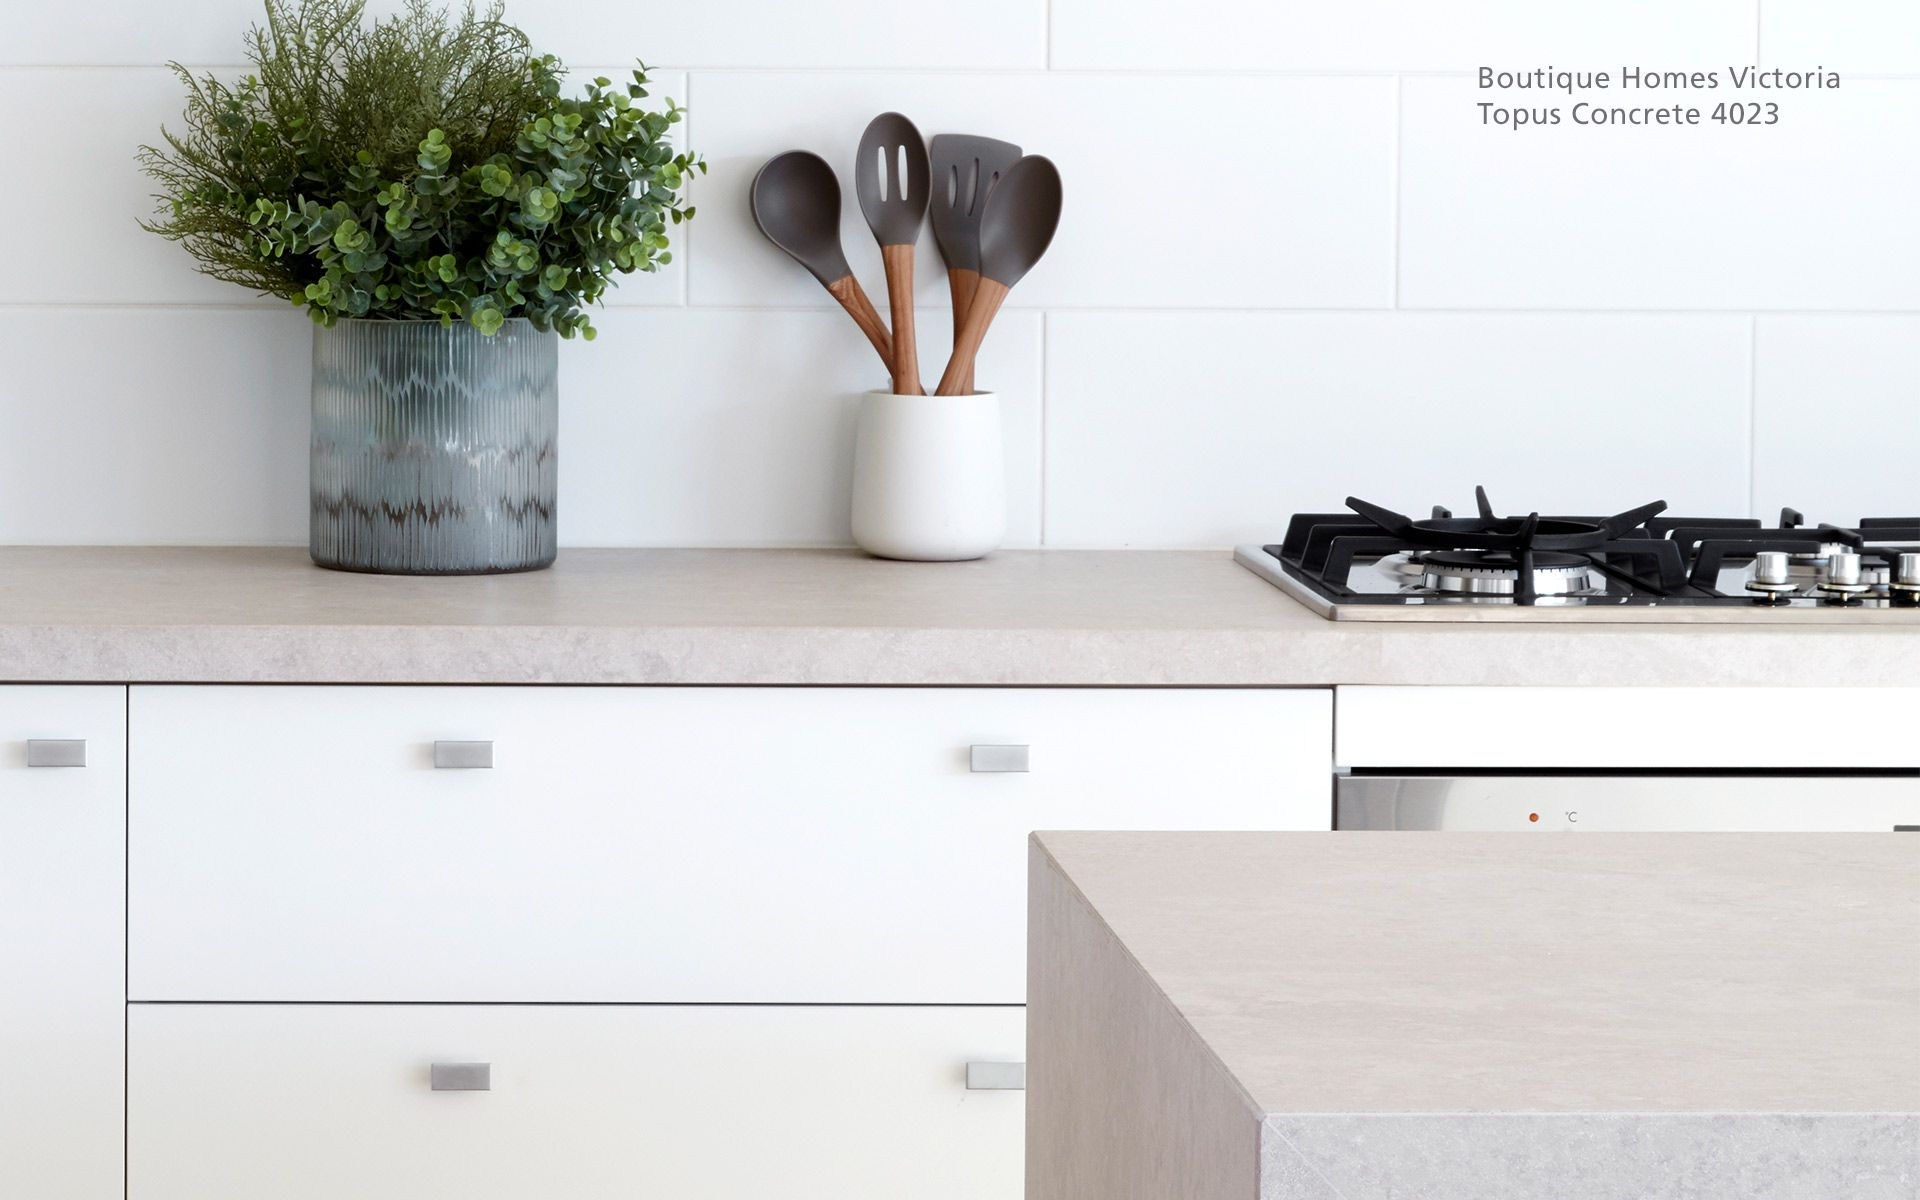 Caesarstone Topus Concrete Quartz That Looks Like Granite Caesarstone Caesarstone Kitchen Concrete Kitchen